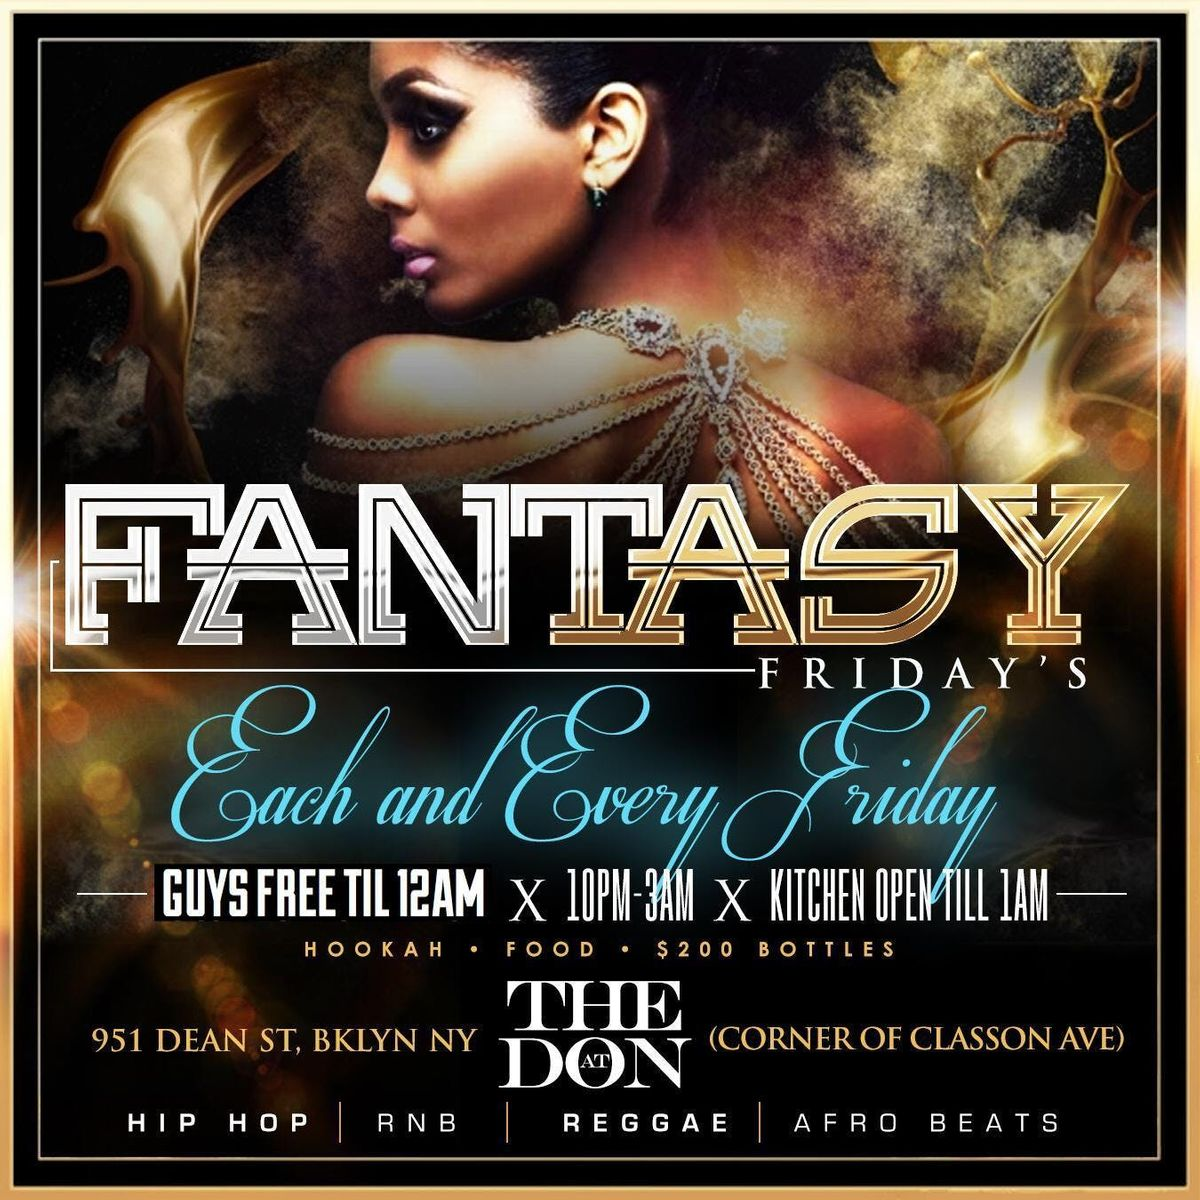 CEO FRESH PRESENTS FREE FRIDAYS AT THE DON (BROOKLYN) (HOOKAH AND DRINK SPECIALS)